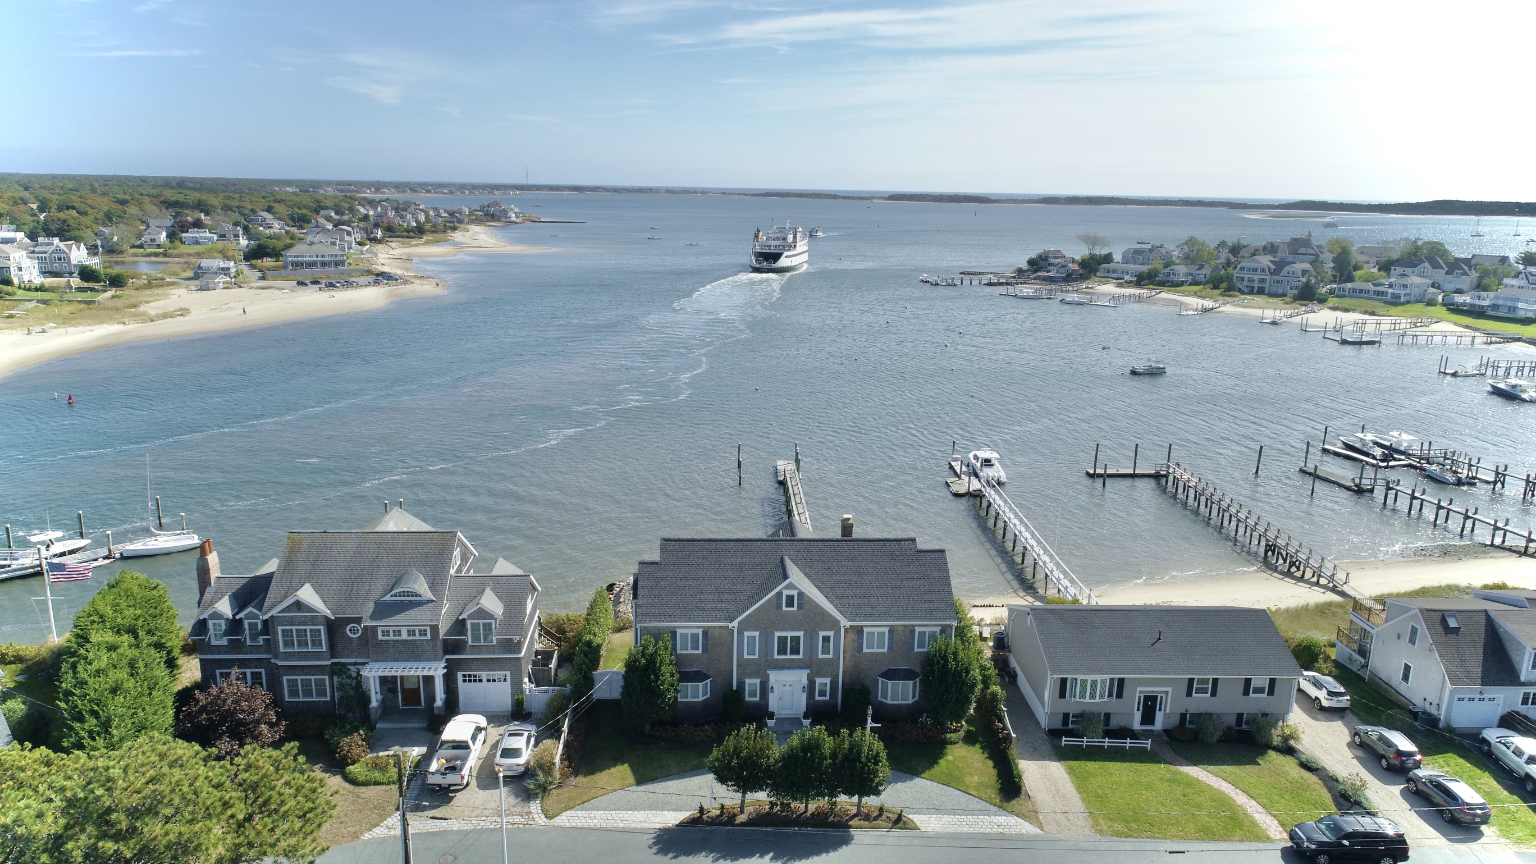 SOLD By Griffin Realty Group | 26 Bay Shore Rd Hyannis, Ma 02601 MLS #22005294